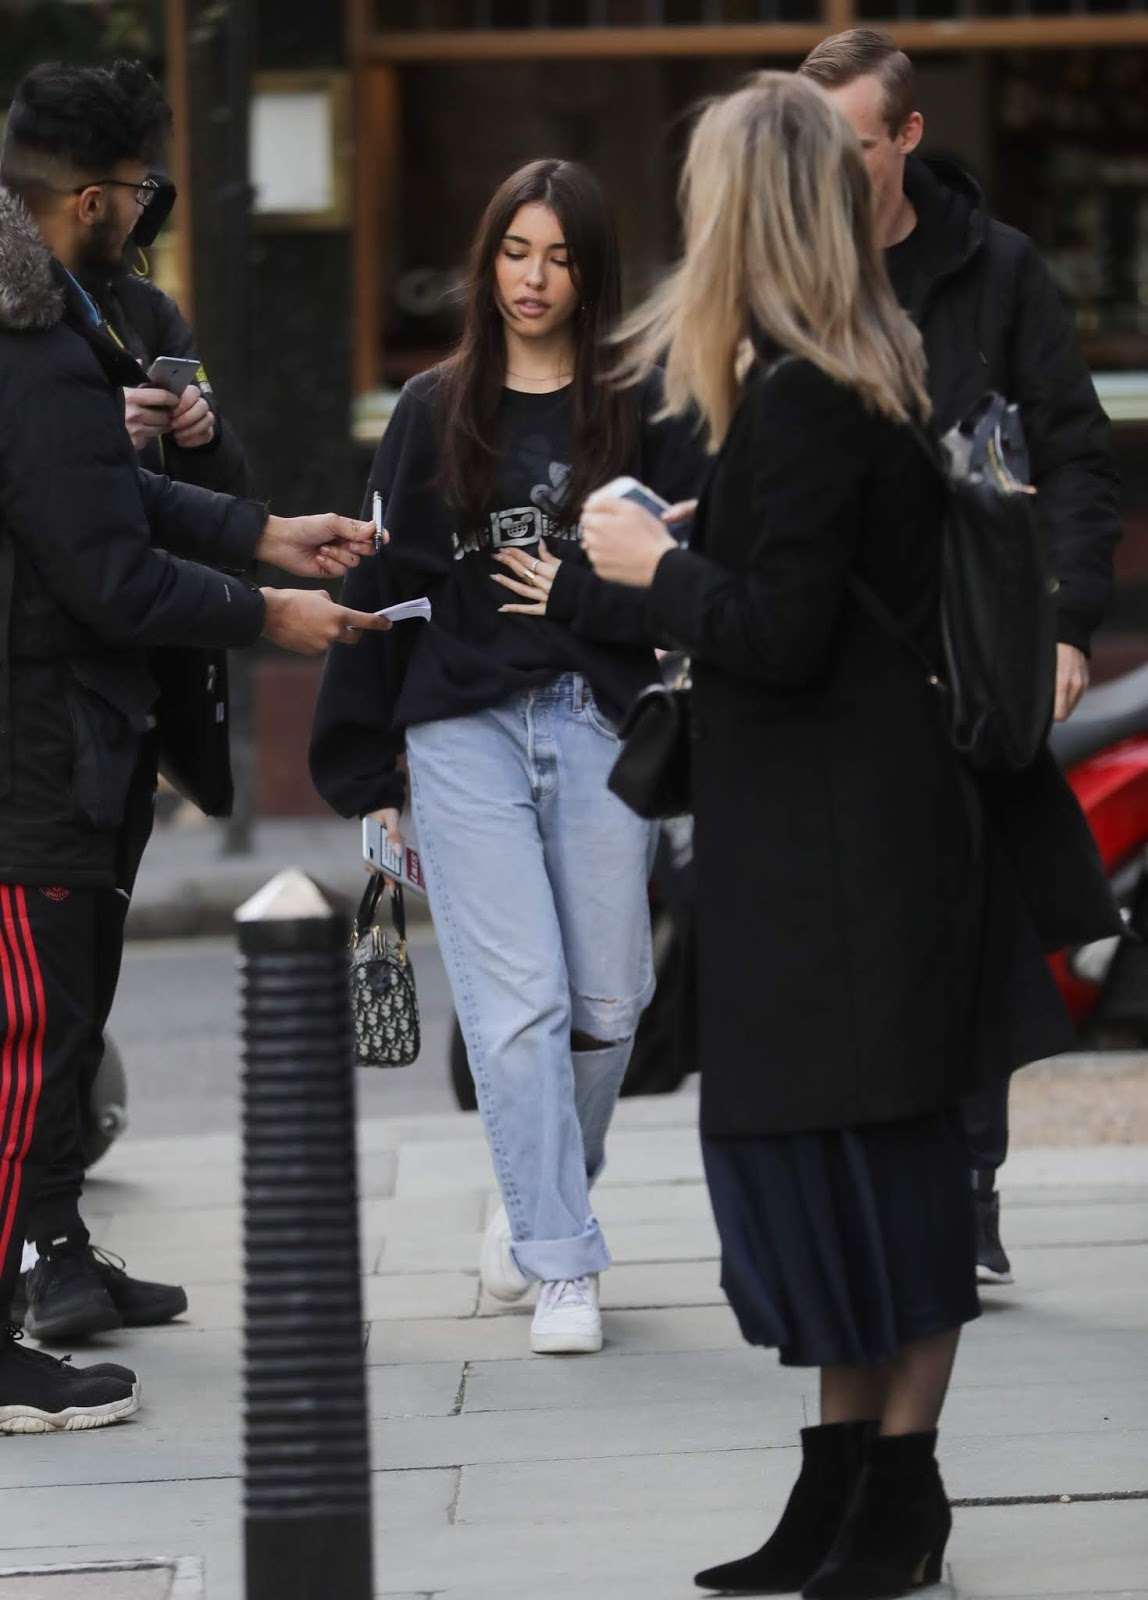 Madison Beer at TV Studios AOL Build in London - 02/20/2019